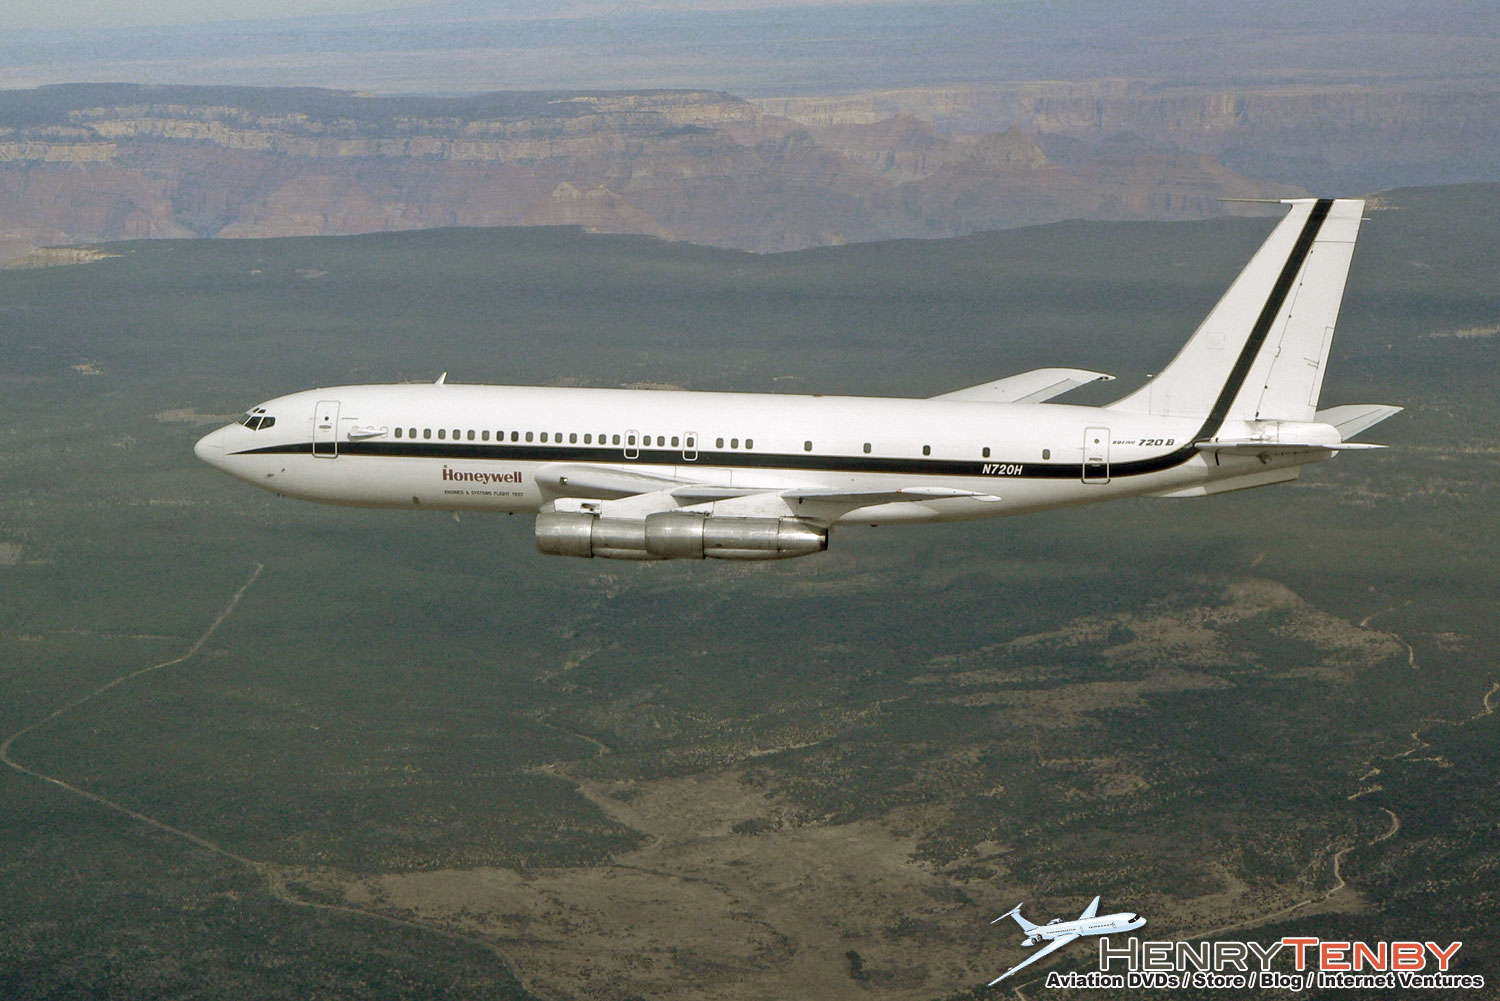 Honeywell's Boeing 720 by Henry Tenby